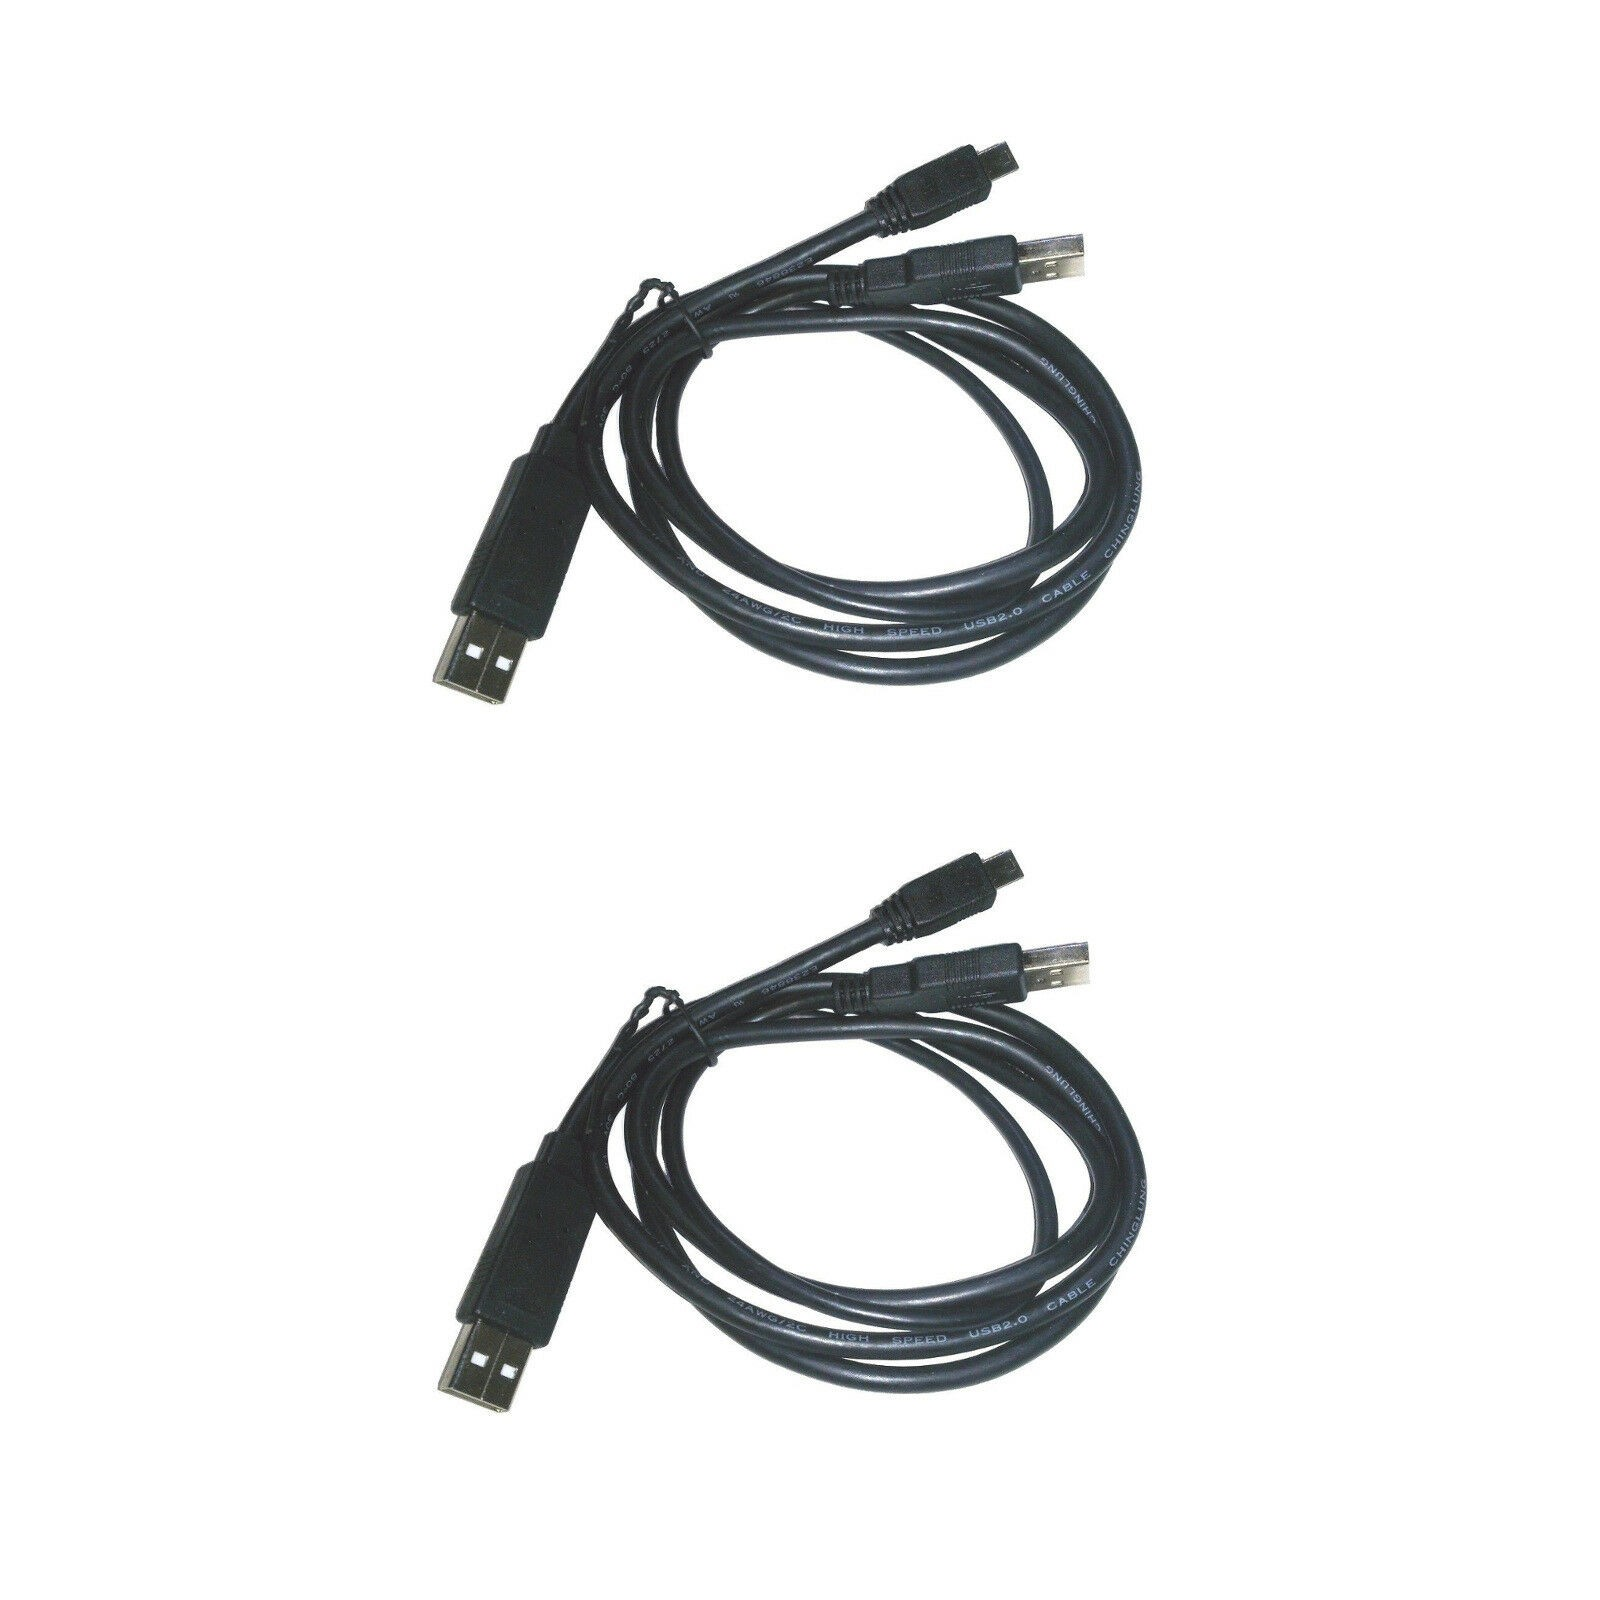 USB 2.0 High Speed Dual Type A Male to Mini-B 5-pin Male Y Adapter Cable